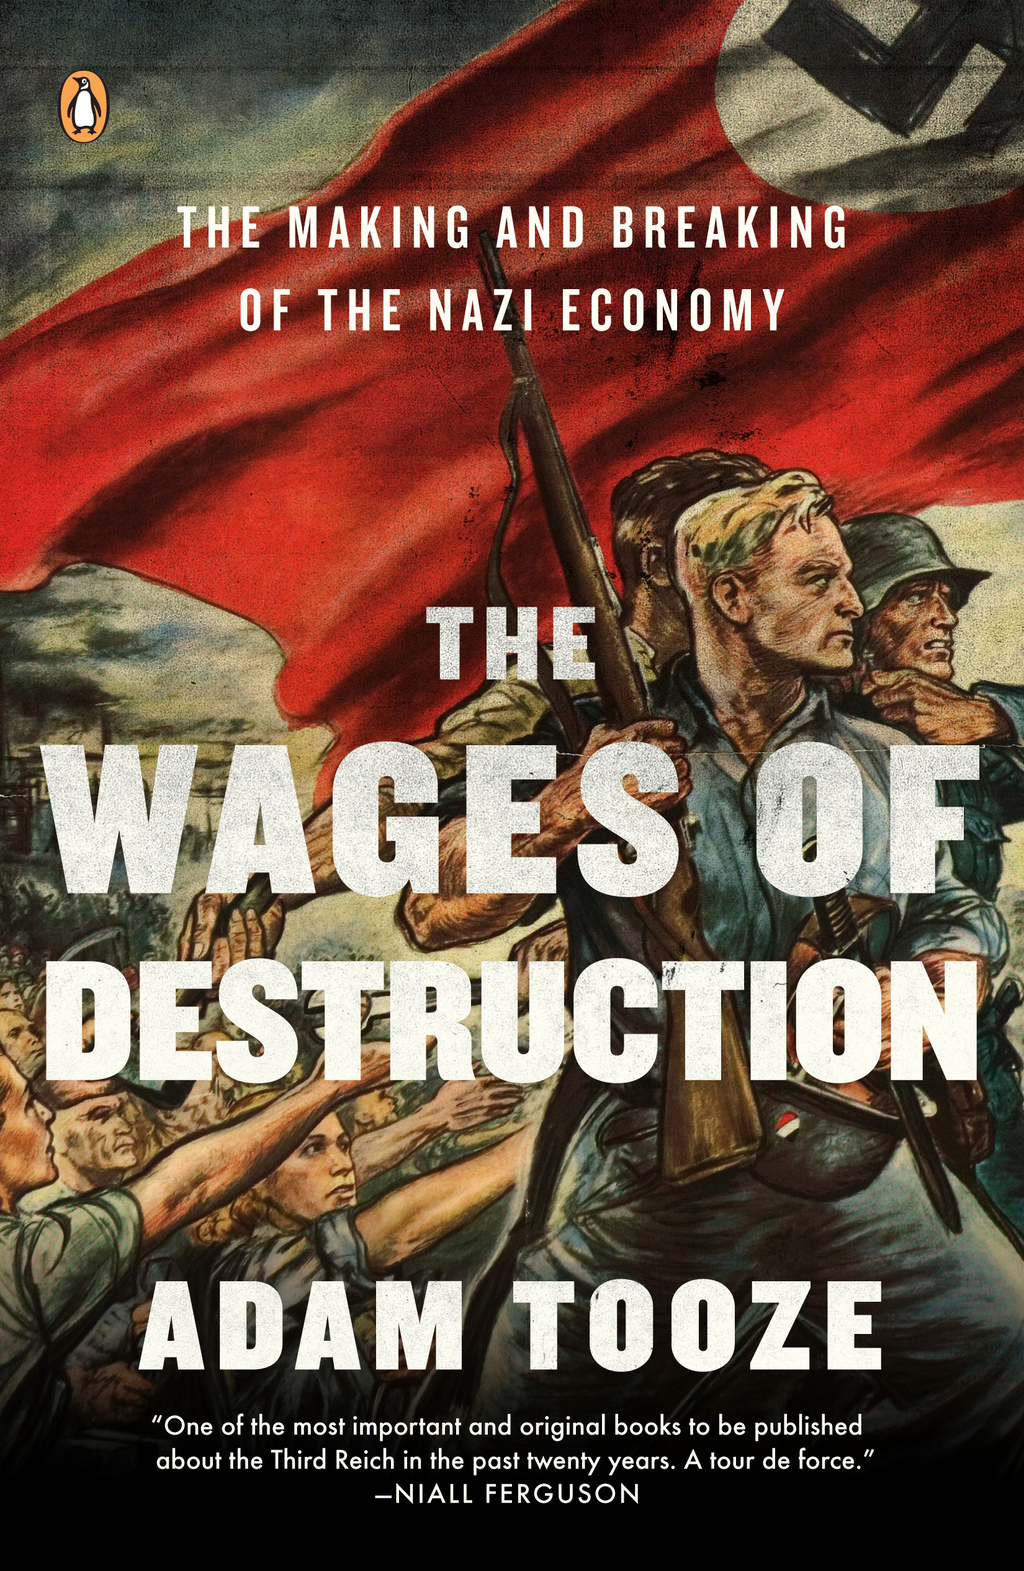 The Wages of Destruction: The Making and Breaking of the Nazi Economy By: Adam Tooze